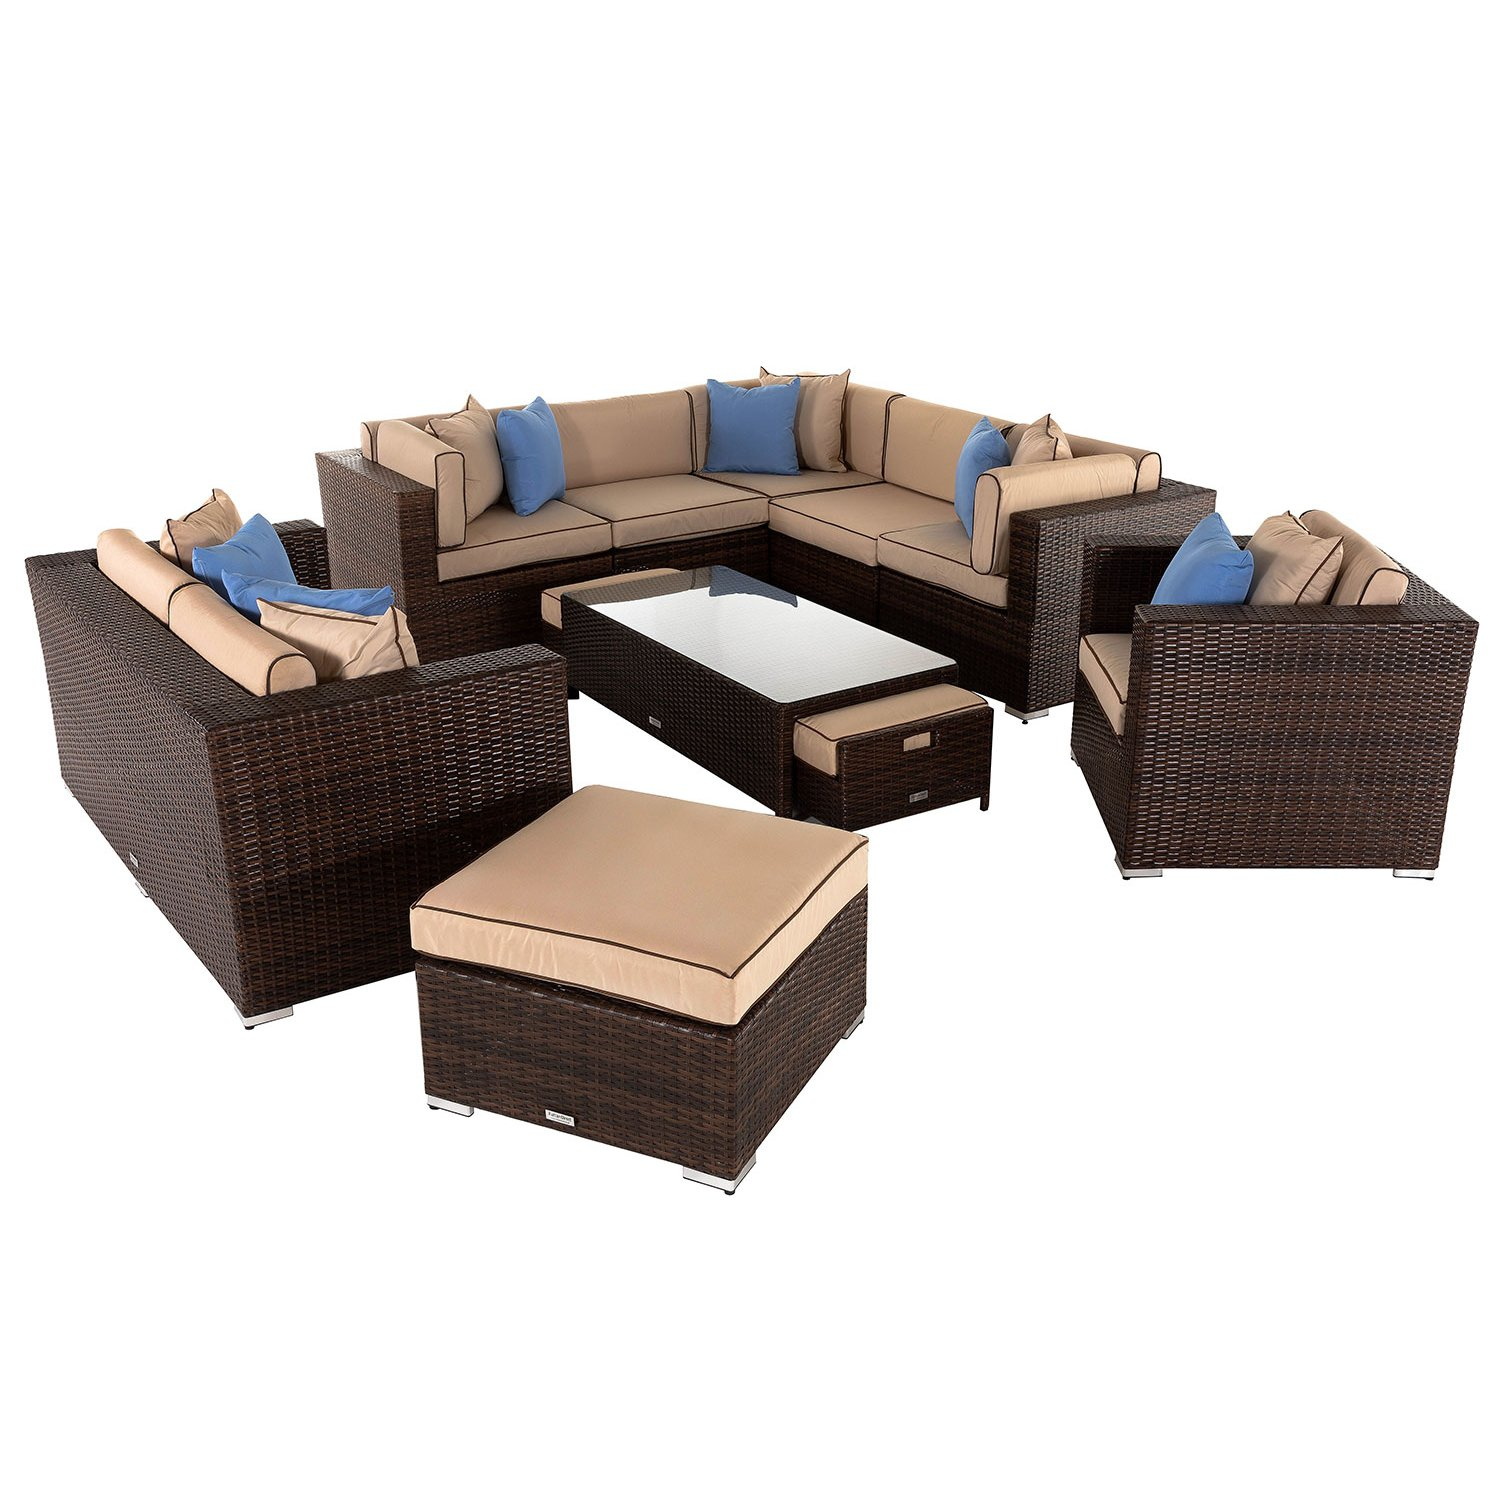 image-Geneva 4: Rattan Garden Corner Sofa Set in Chocolate and Cream